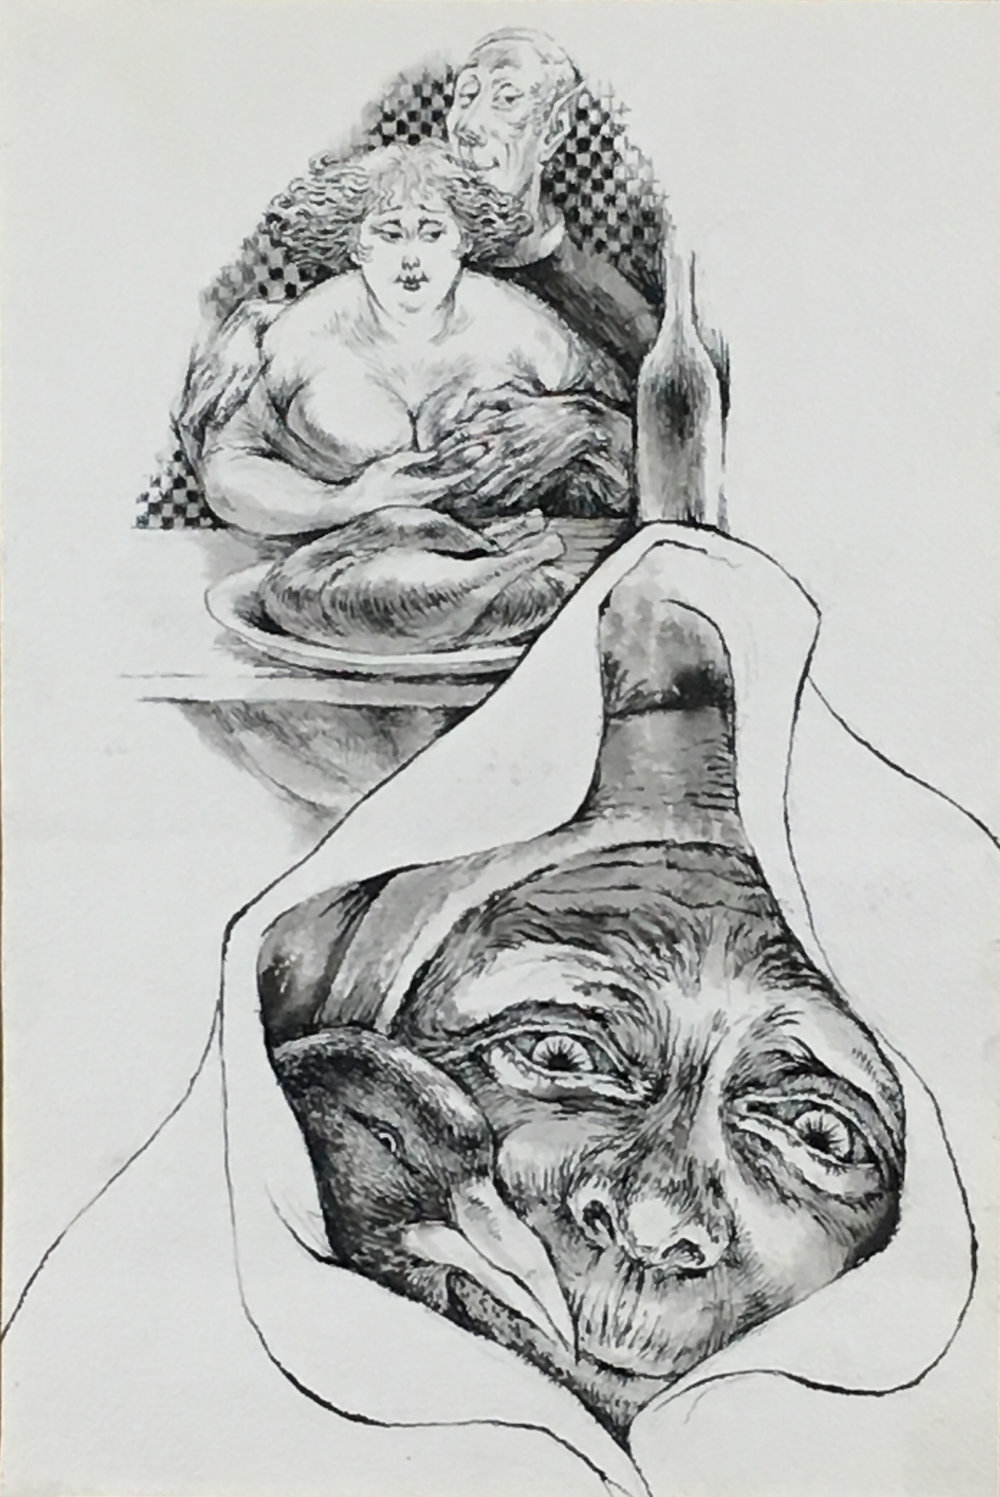 The Little Peasant,  1970-71 ink on paper, 16 3/4 x 11 inches